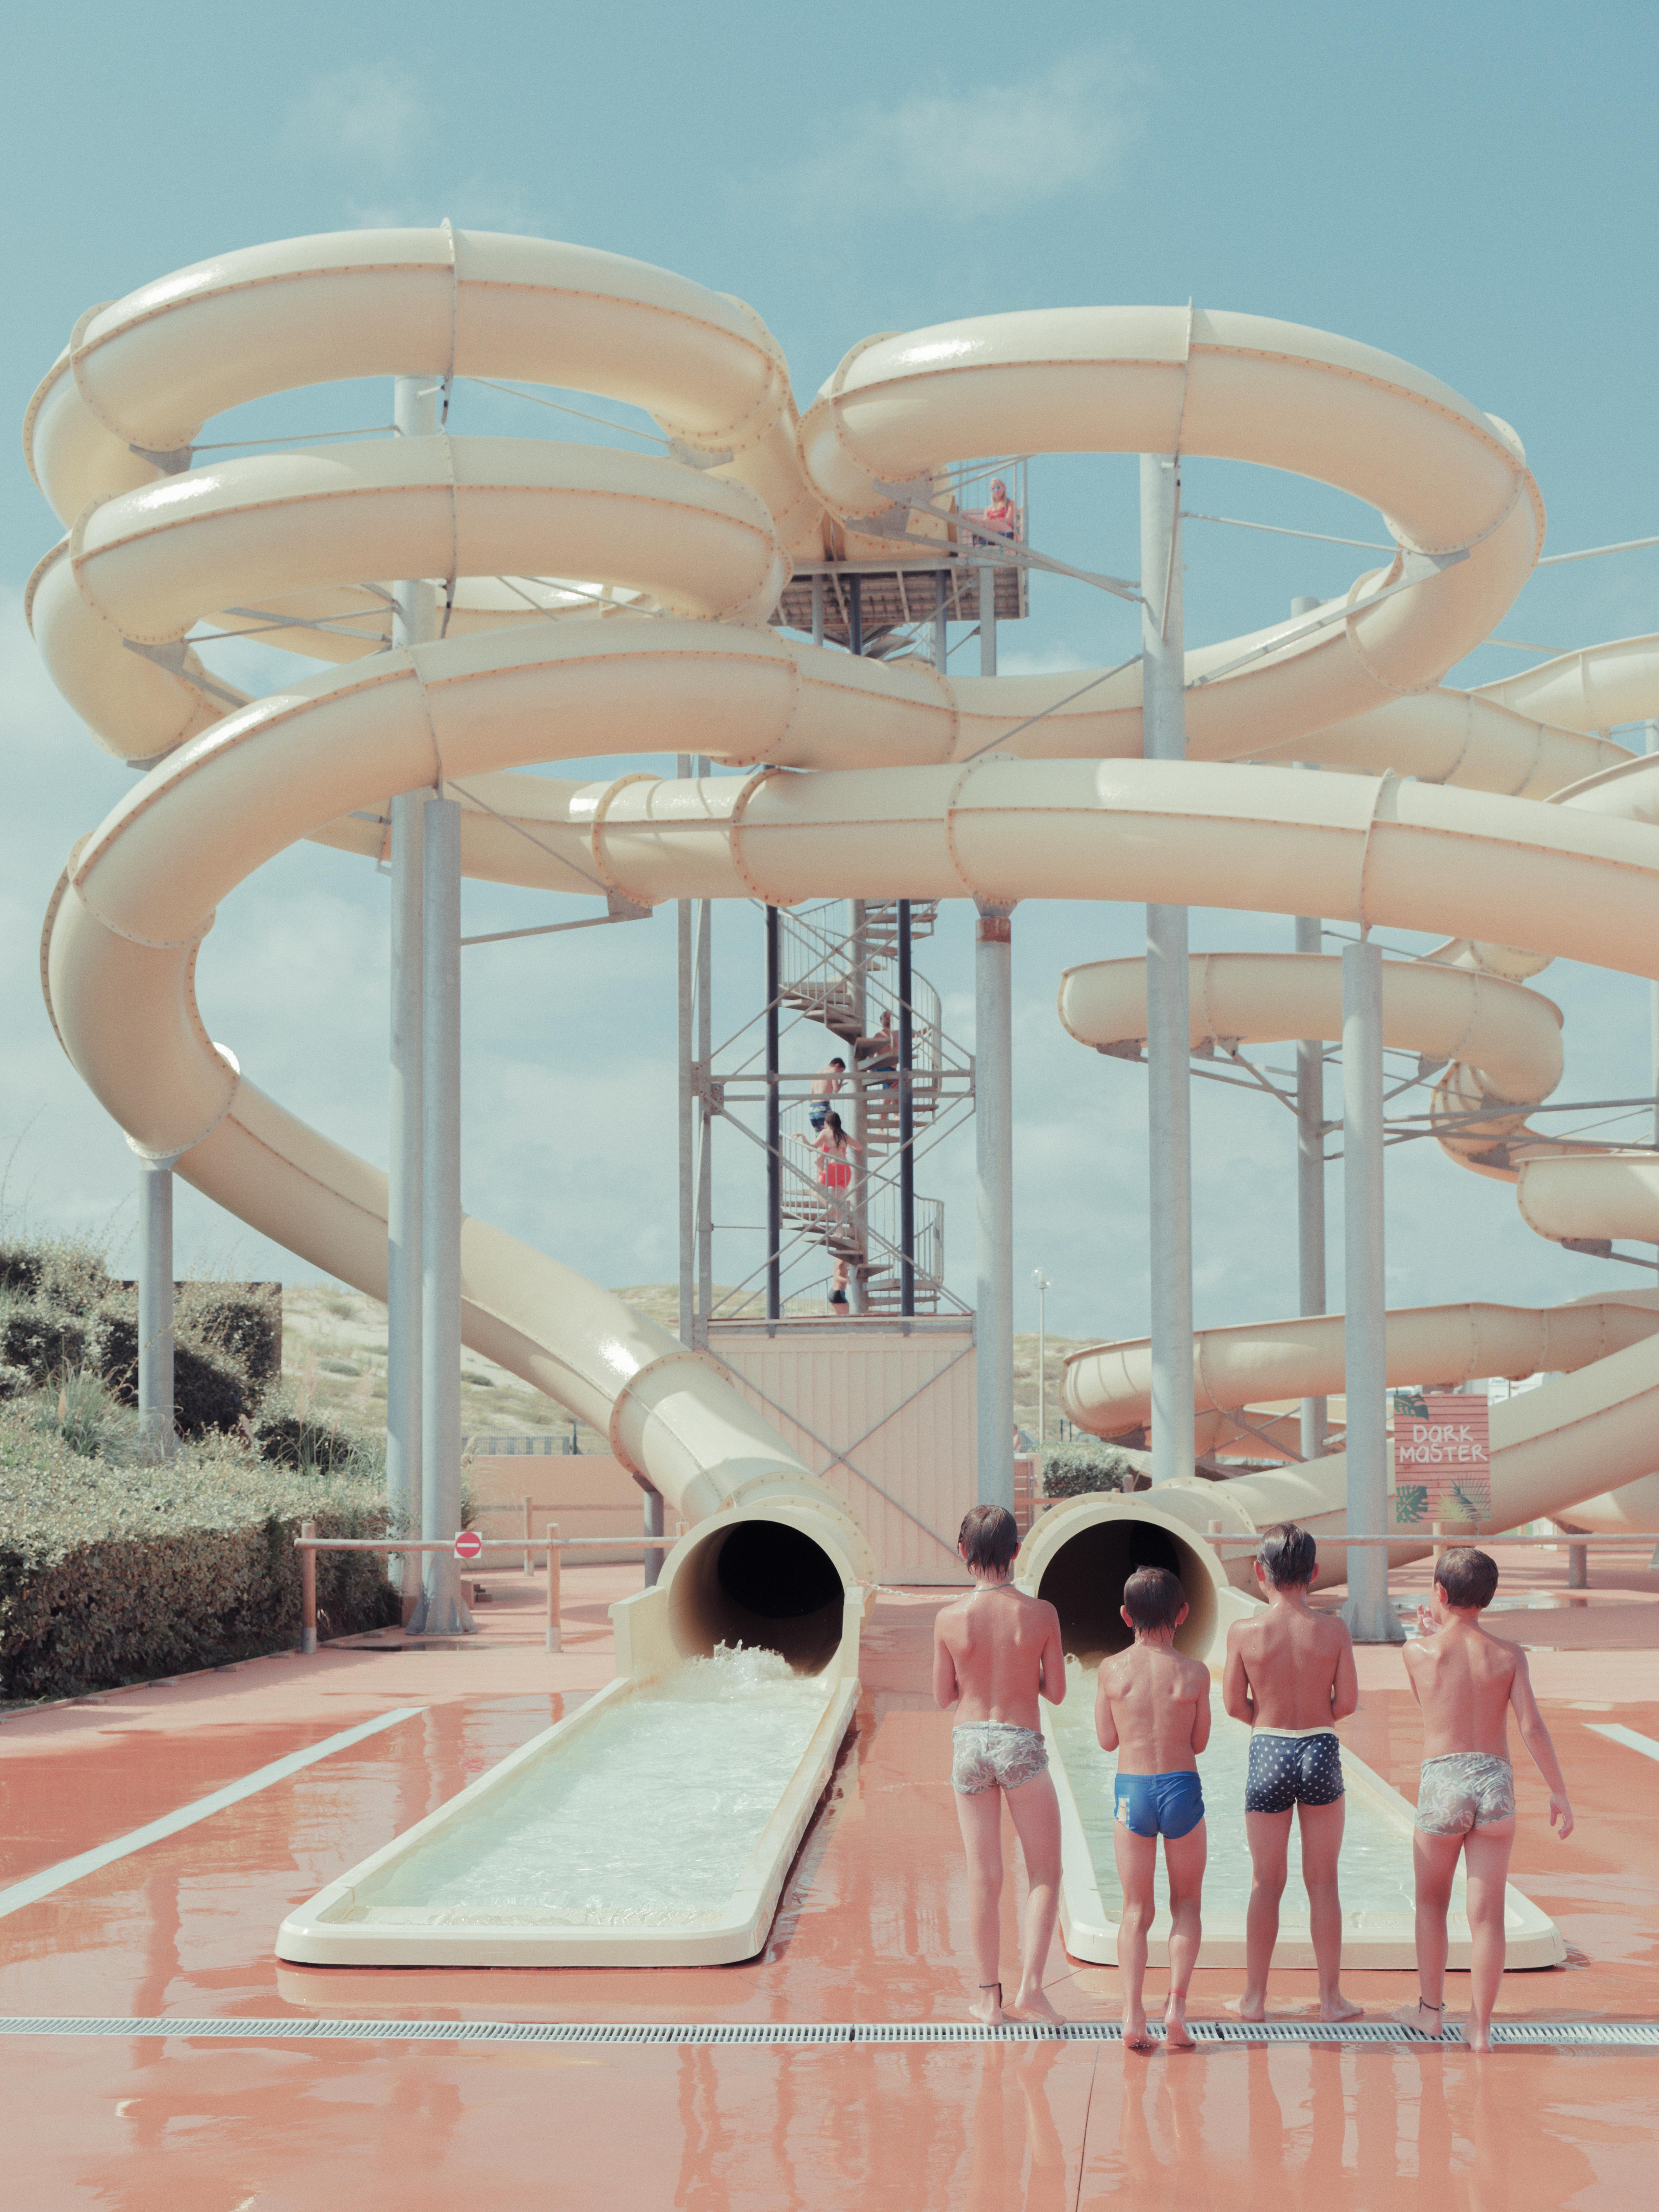 The big picture: joy and nostalgia in a French water park